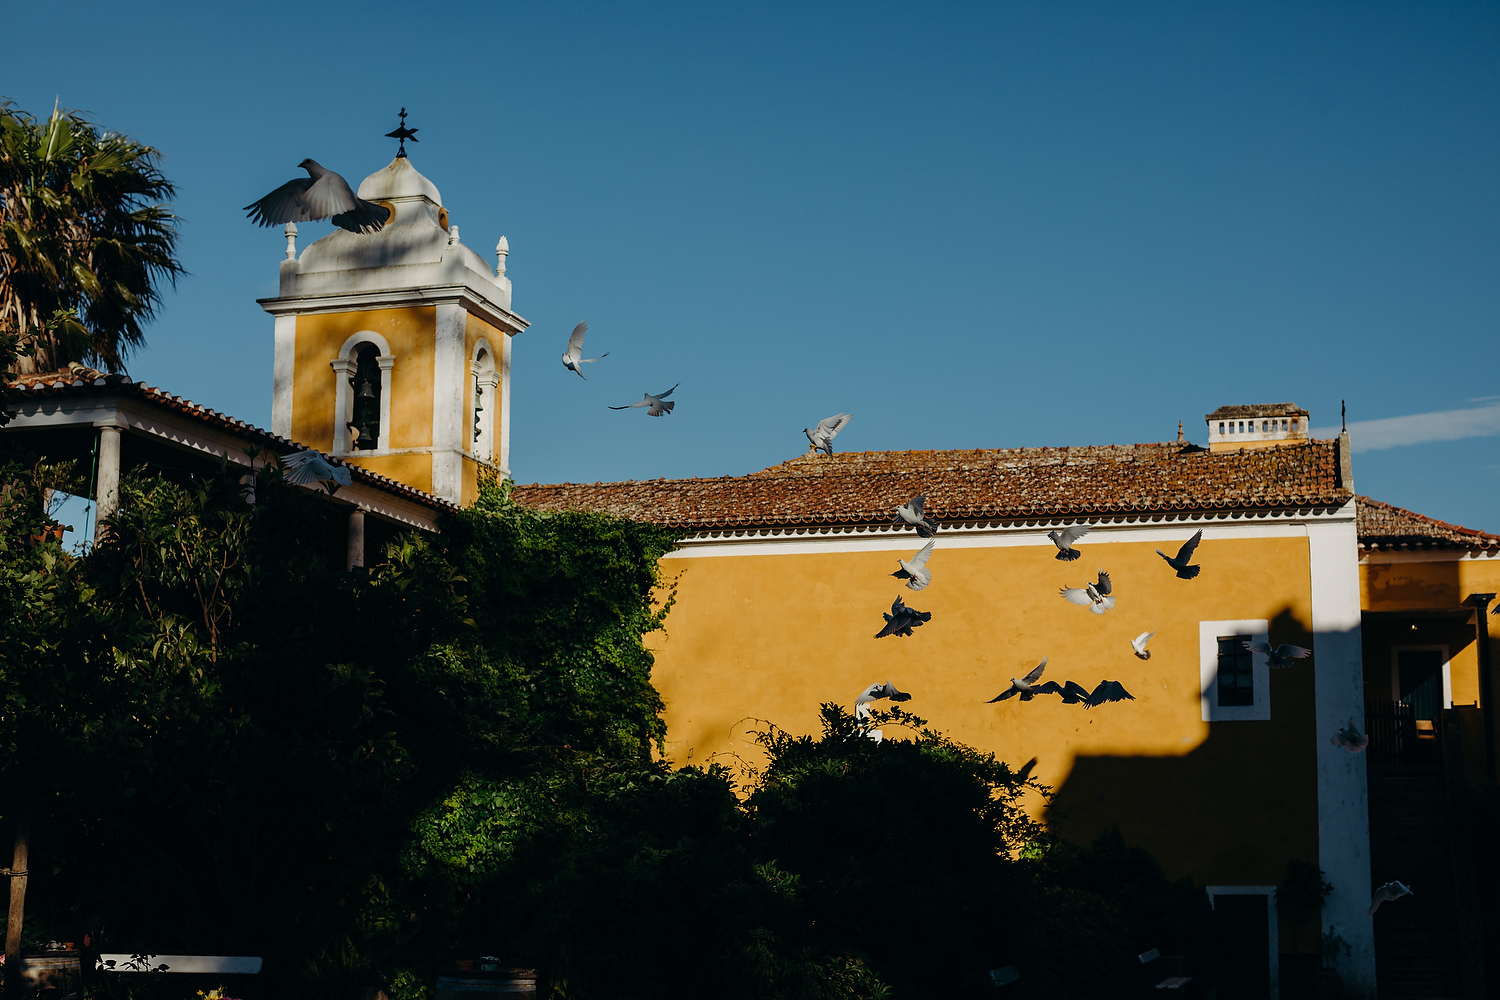 birds fly in front of Baroque chapel